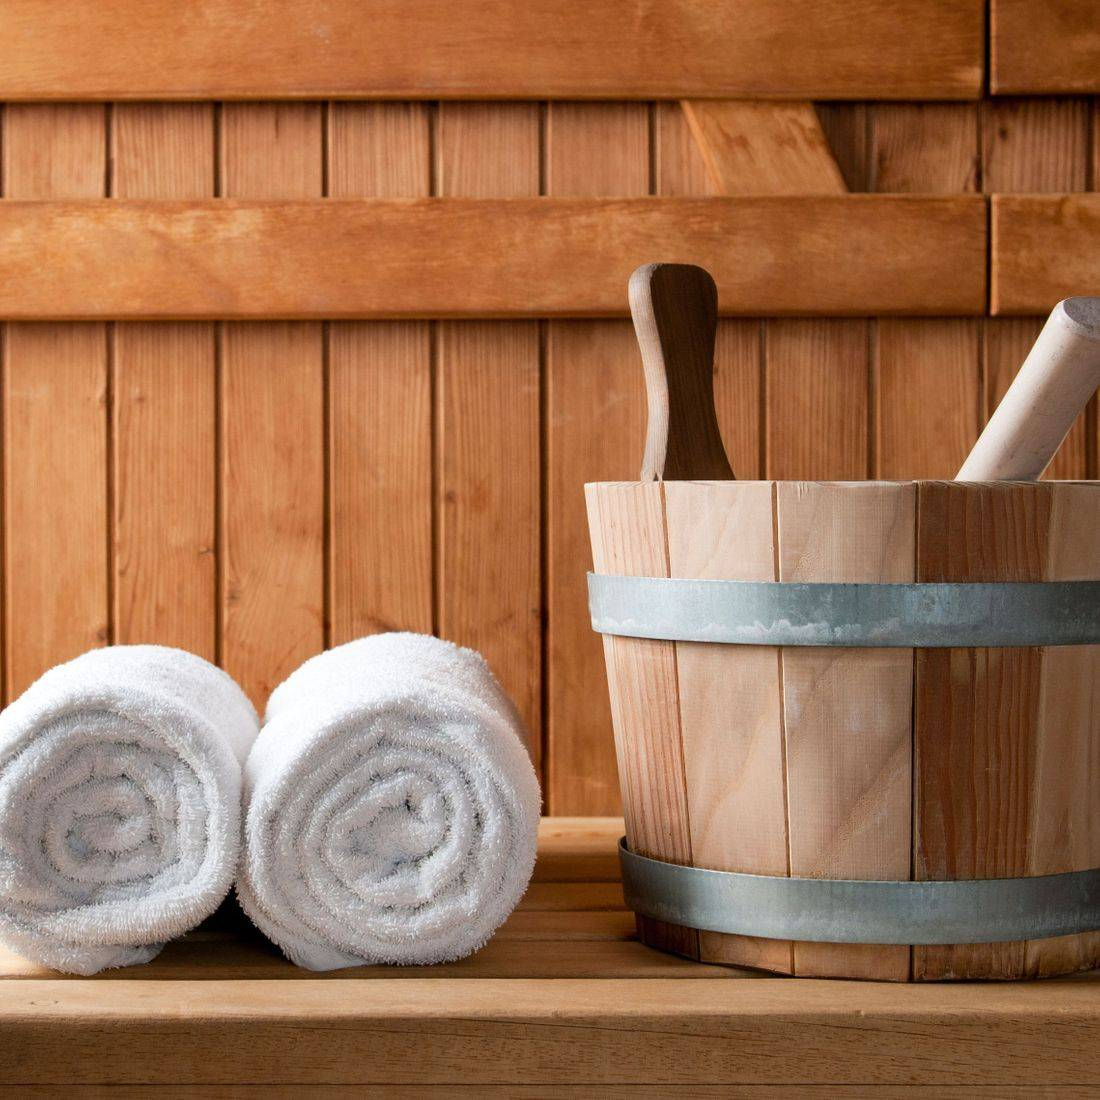 Picture of a Sauna Interior no people